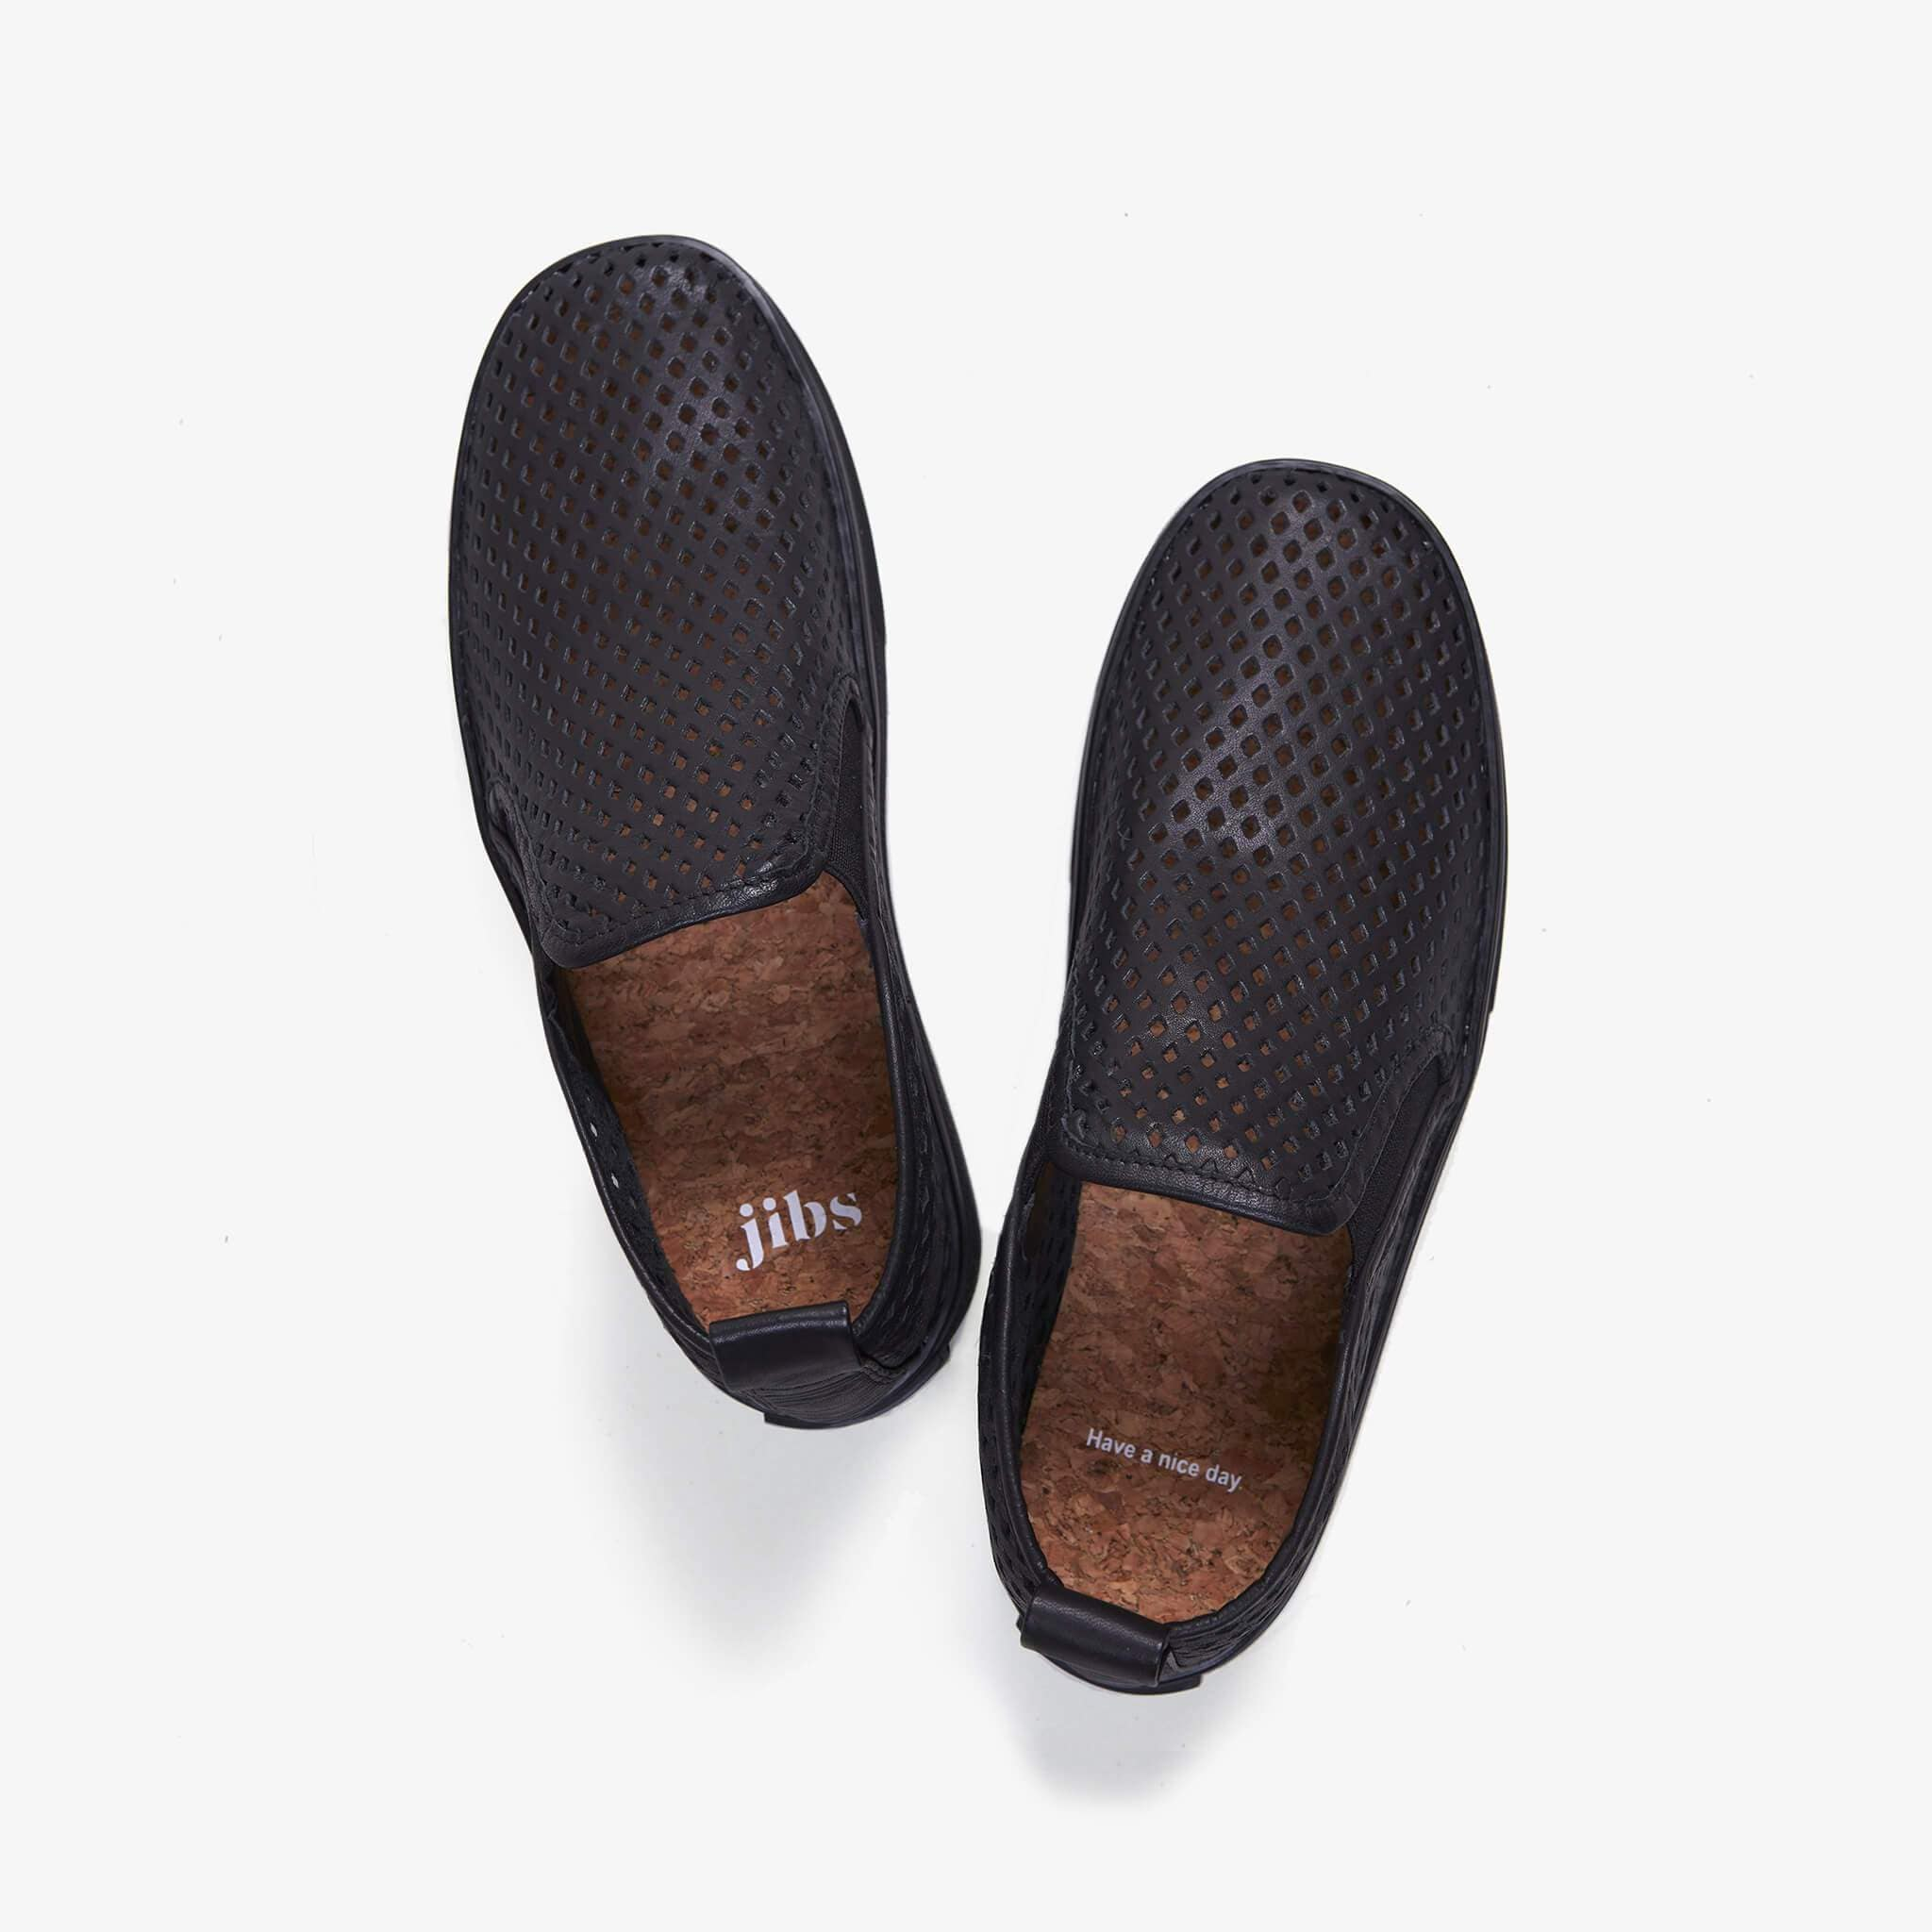 Jibs Mid Rise Jet Black Royale Slip On Sneaker Bootie Top Have A Nice Day